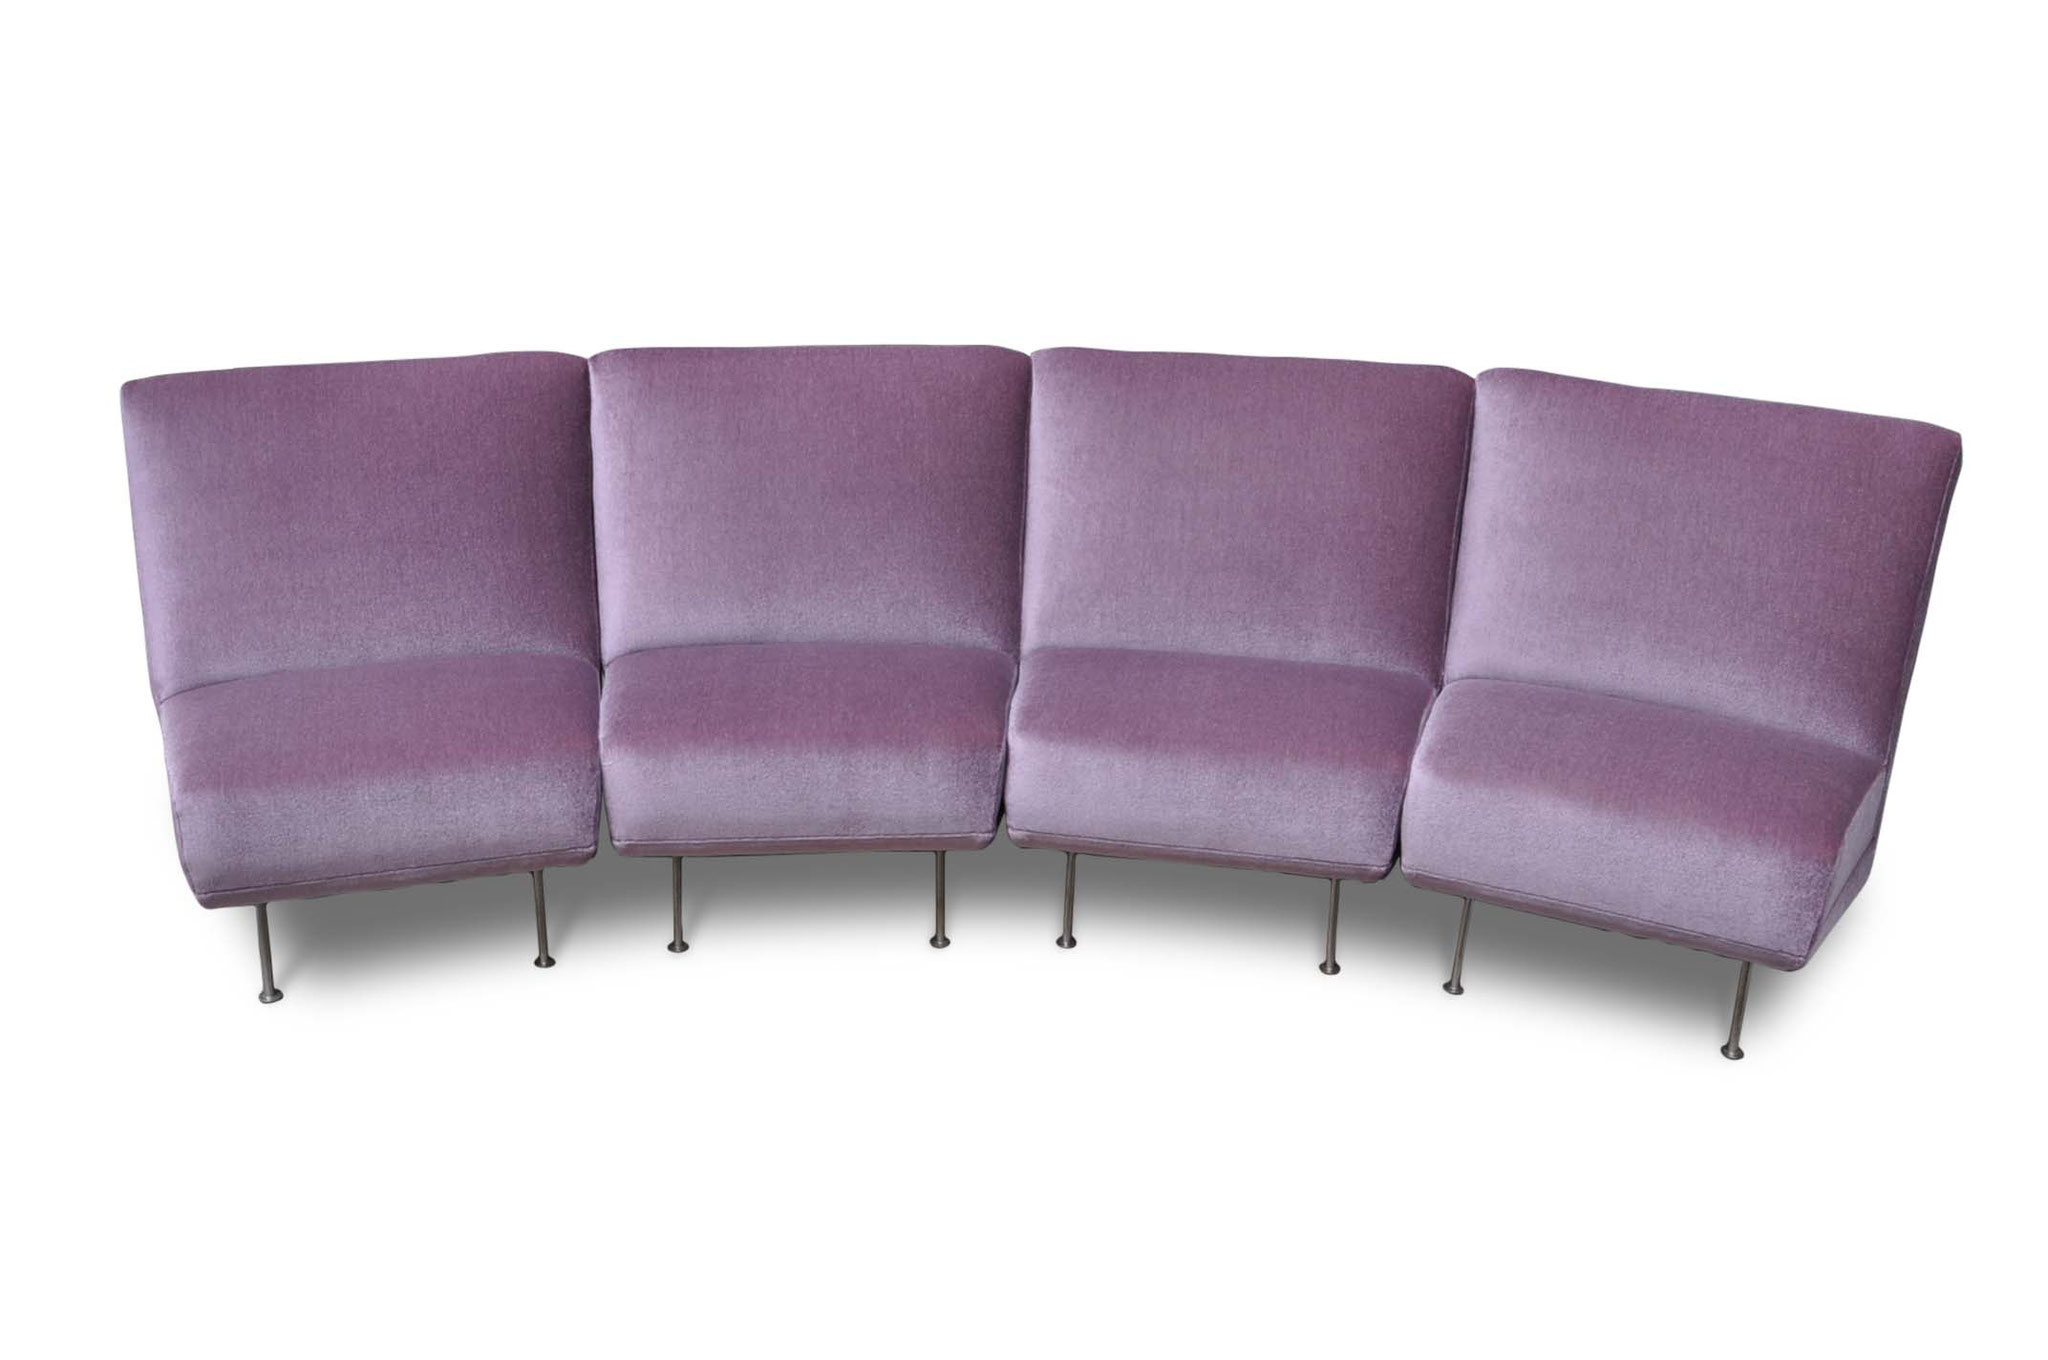 Artifort sectional sofa design Theo Ruth in pink mohair